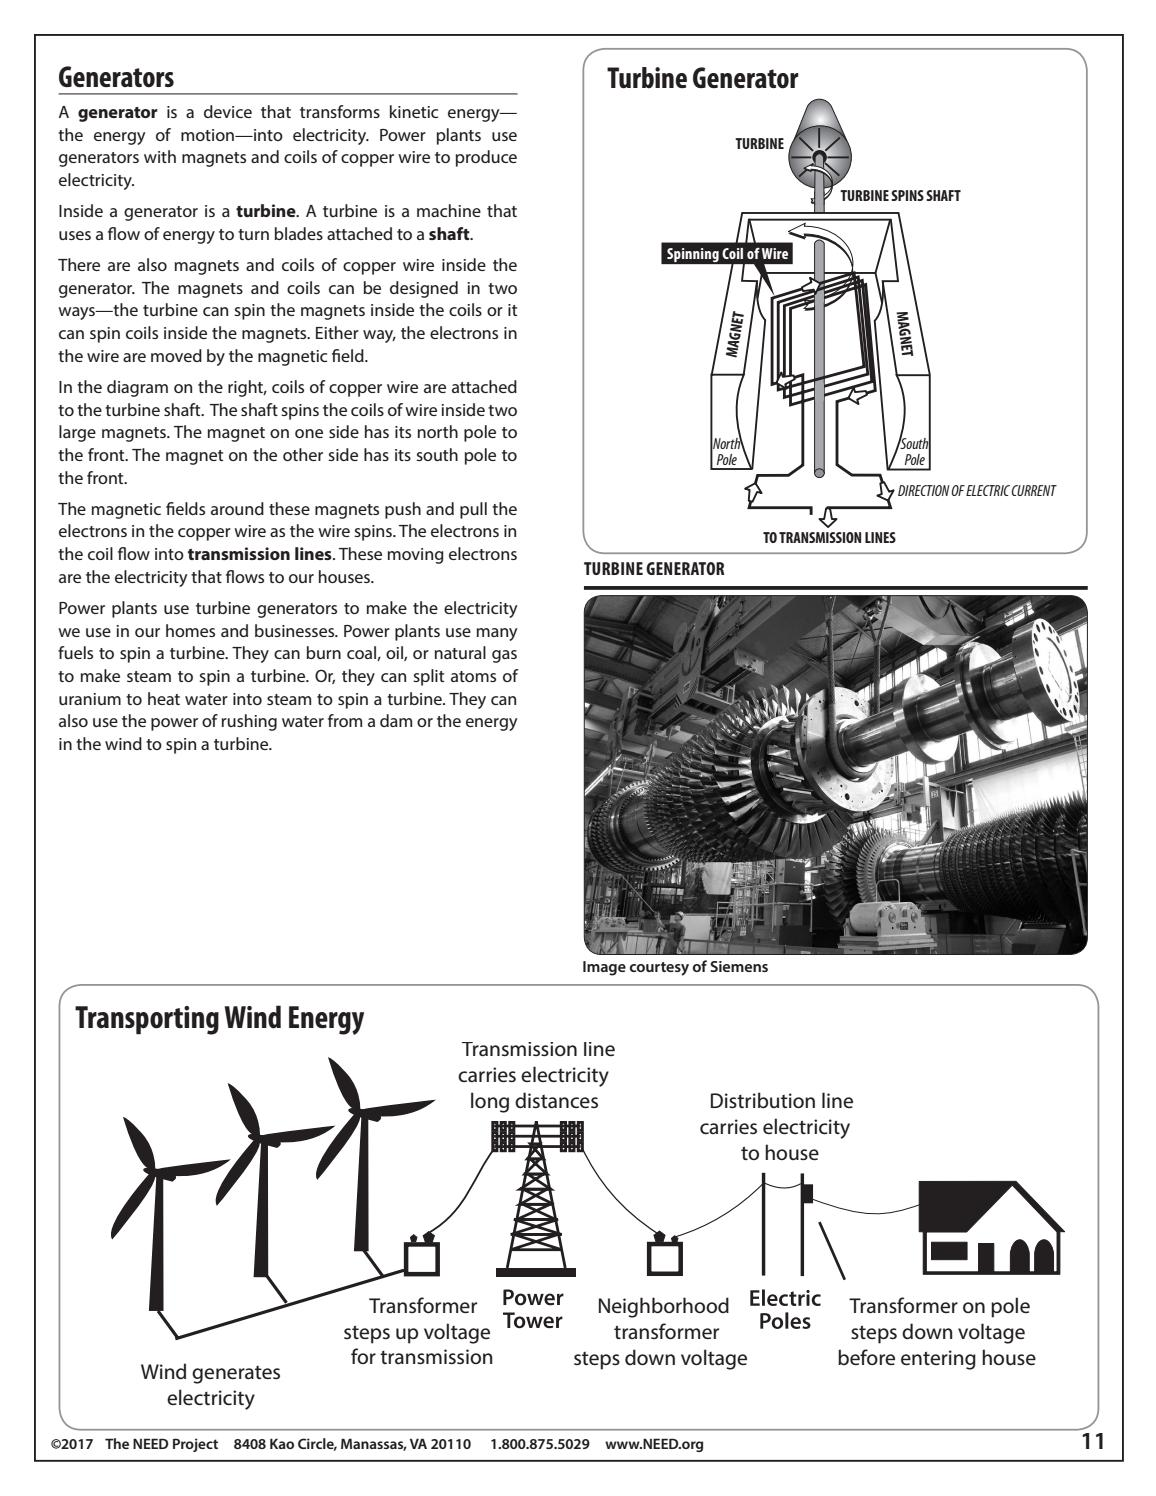 Energy From The Wind Student Guide By Need Project Issuu Wiring Diagram Power Distribution Siemens